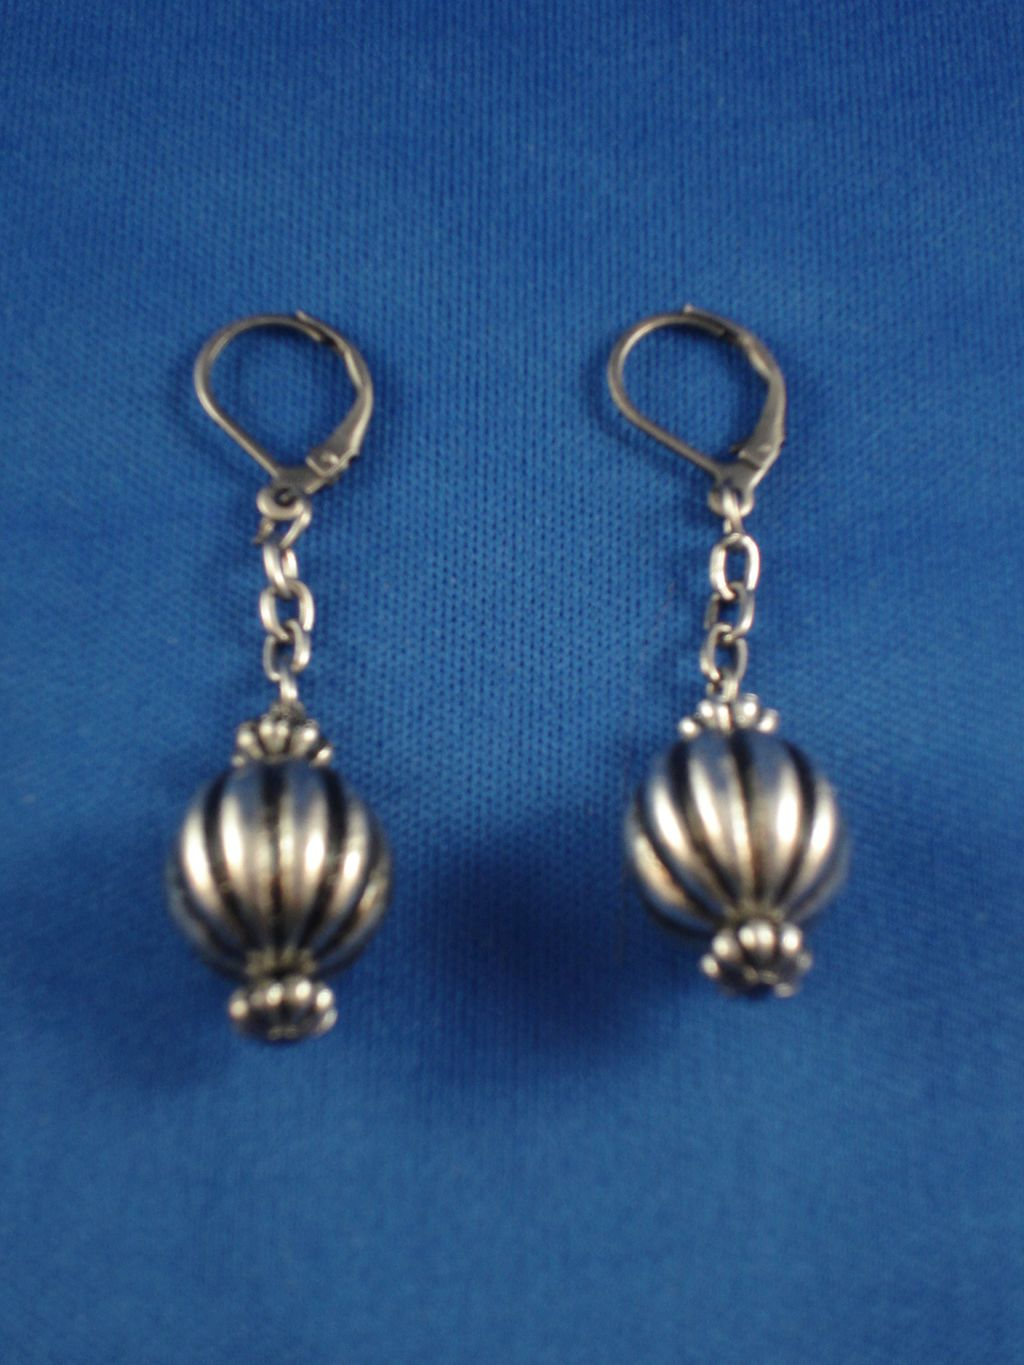 Antique Style Ball Earings On Chain Anti Allergic Jewelry